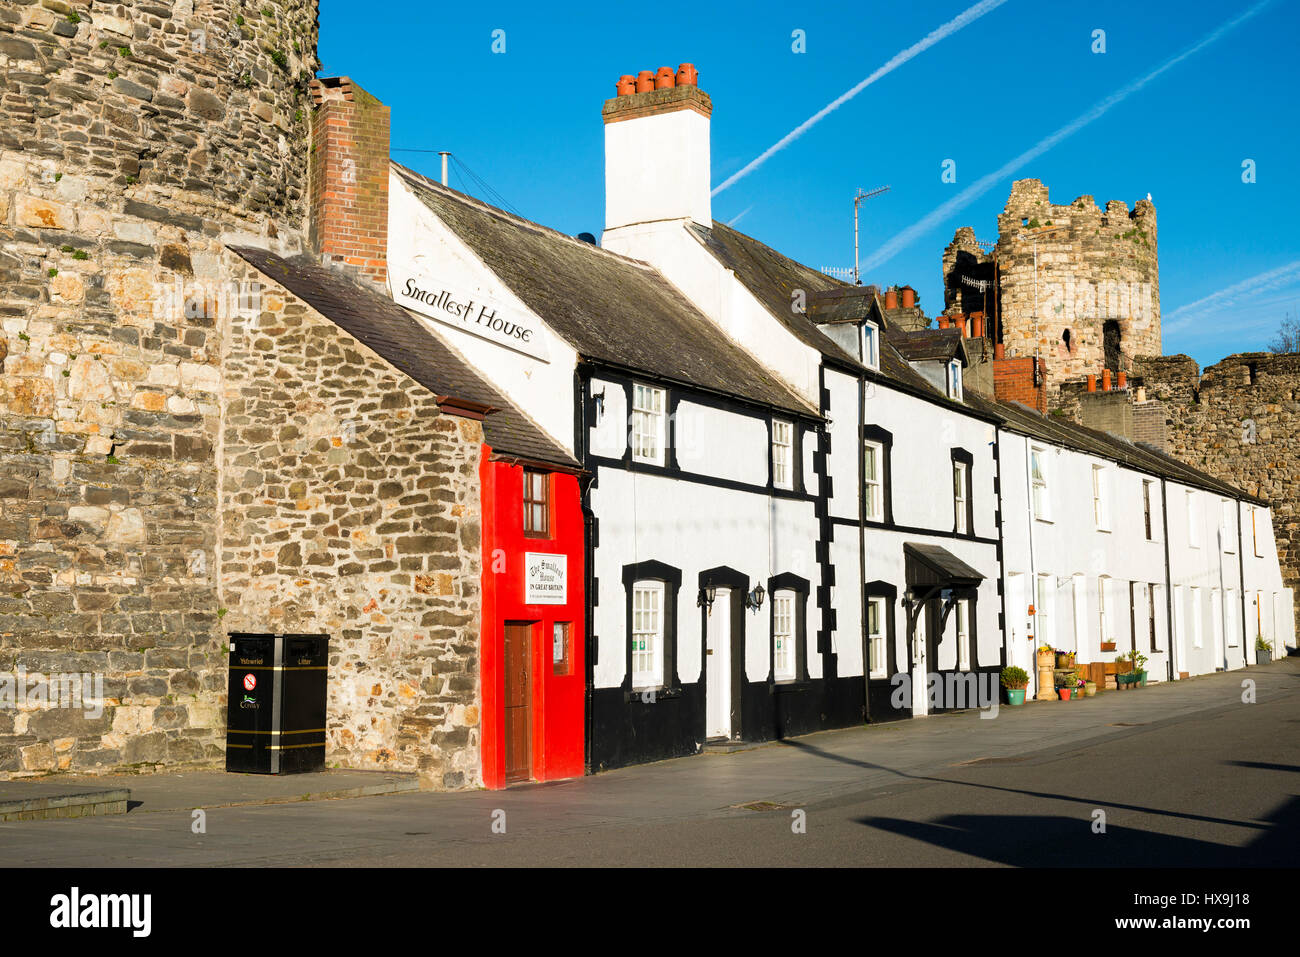 The smallest house in Great Britain, Conwy, Wales, UK. - Stock Image